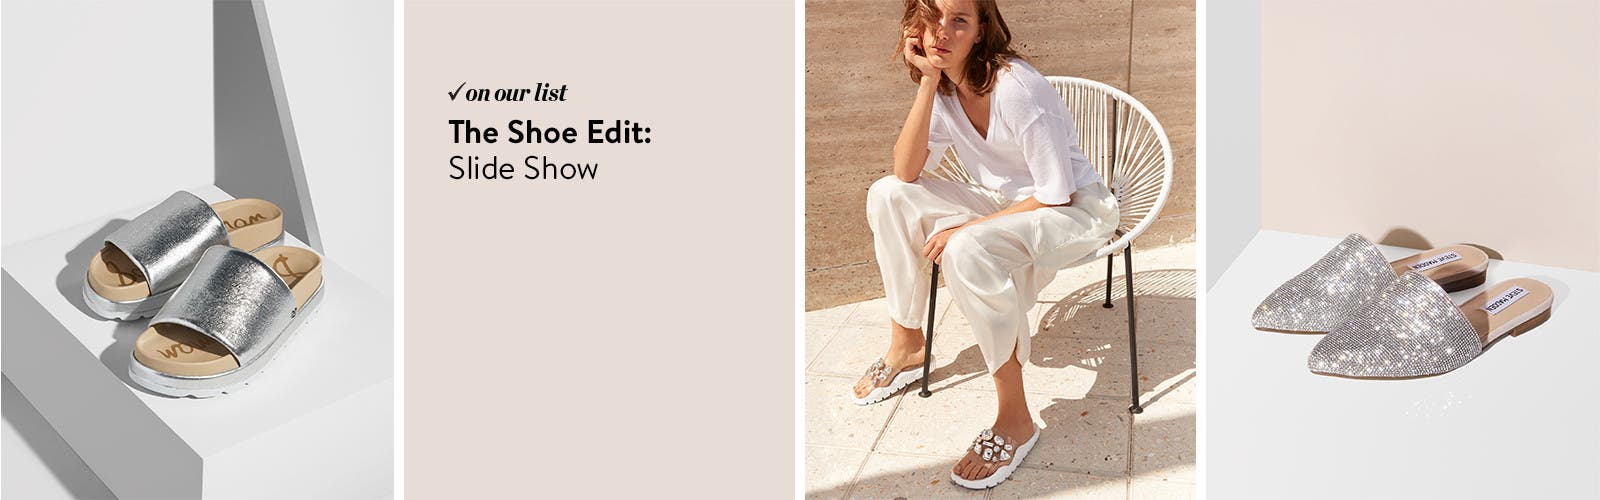 The Shoe Edit: women's slides.